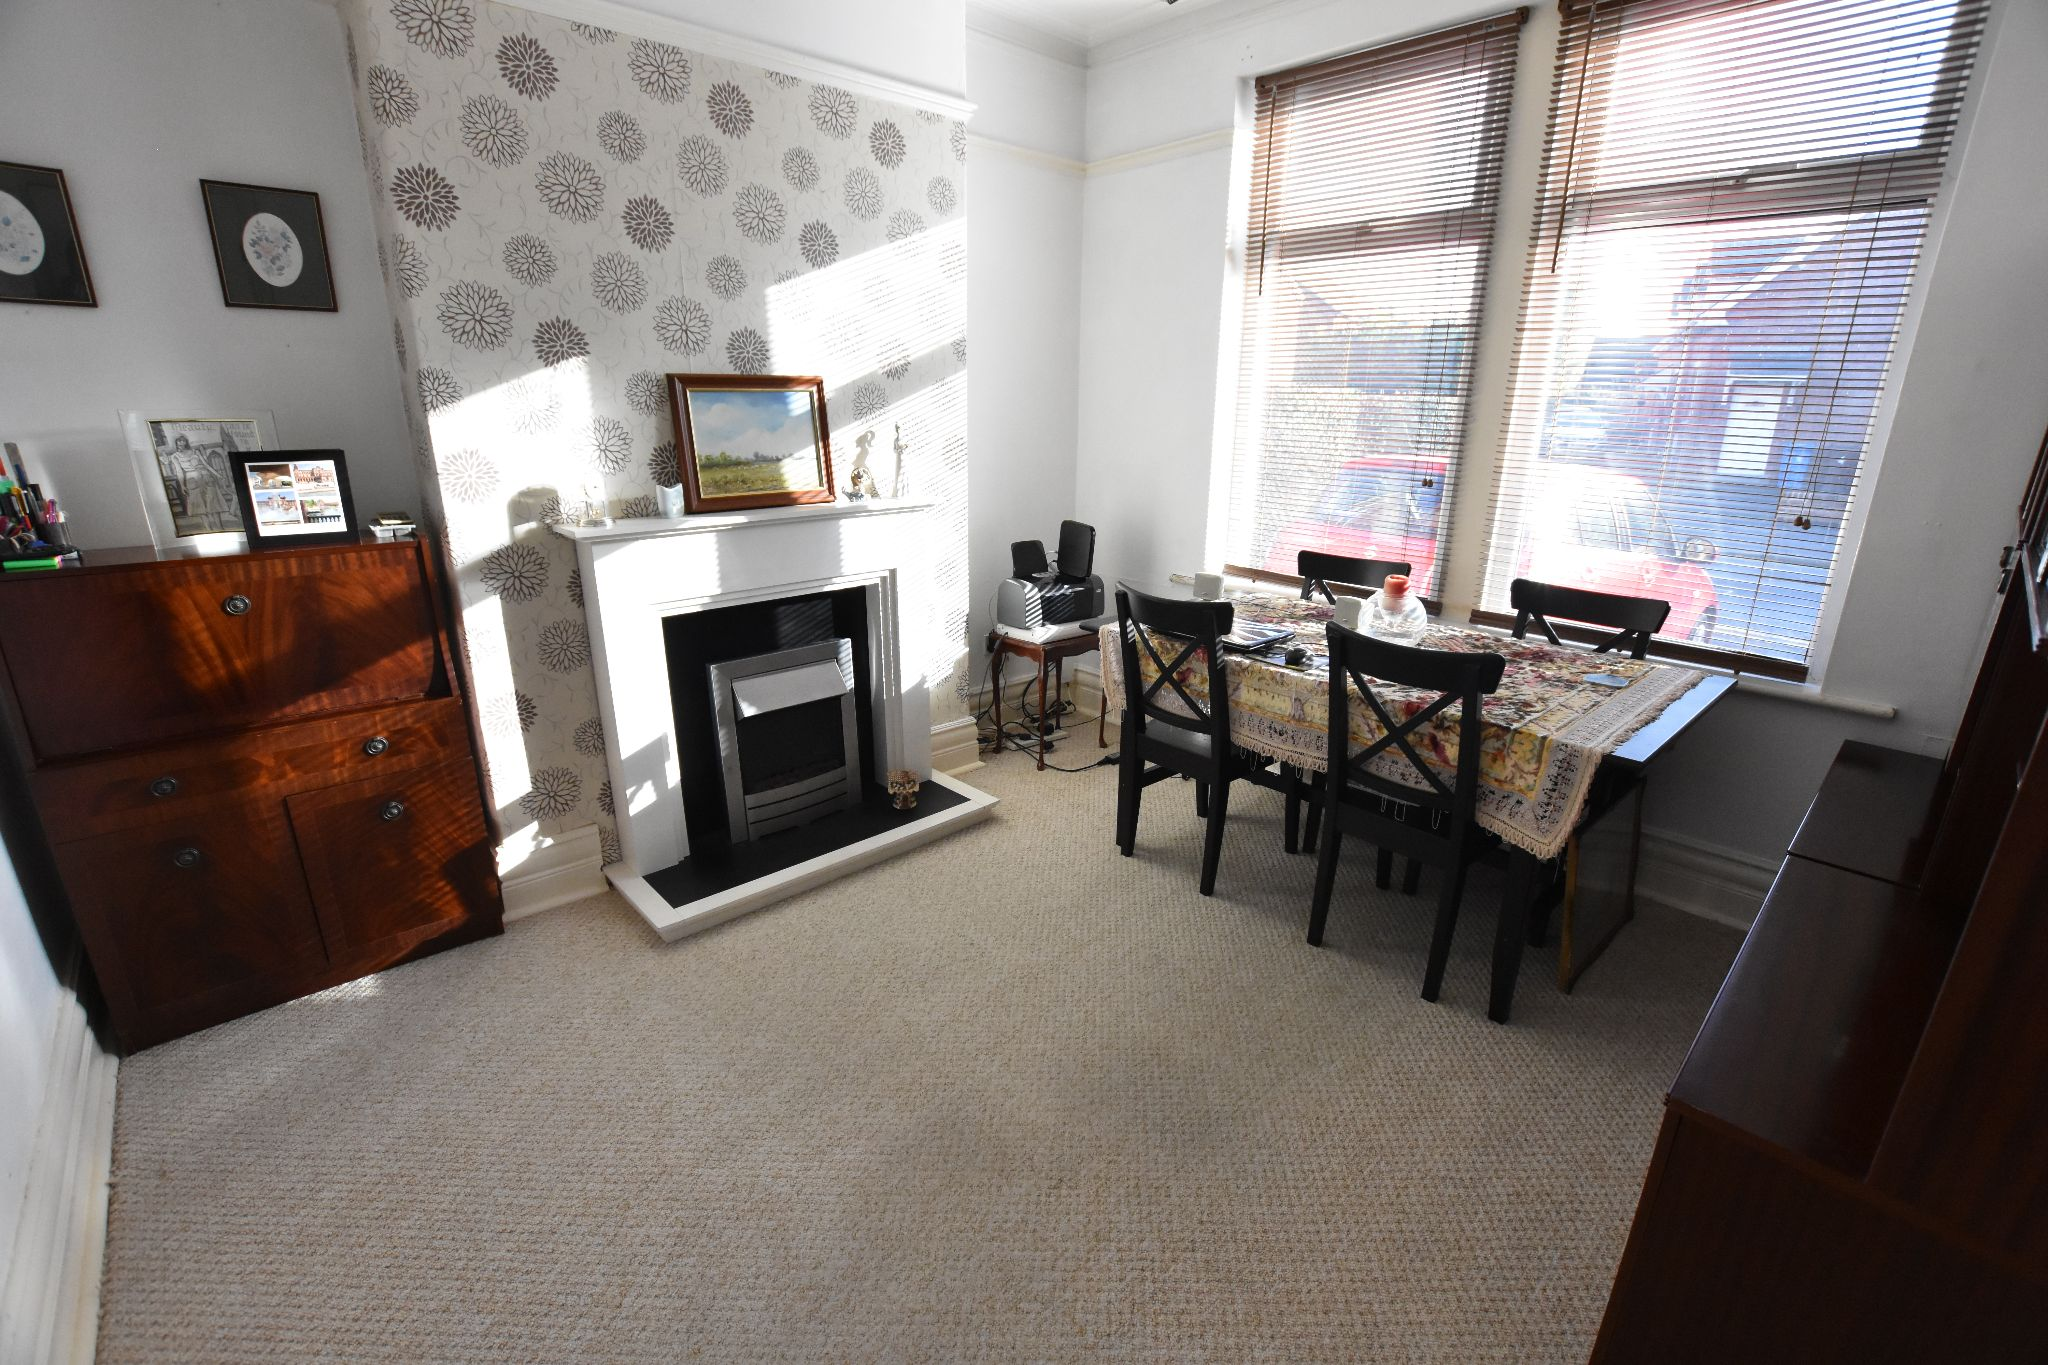 3 bedroom semi-detached house Sold STC in Preston - 2nd Reception